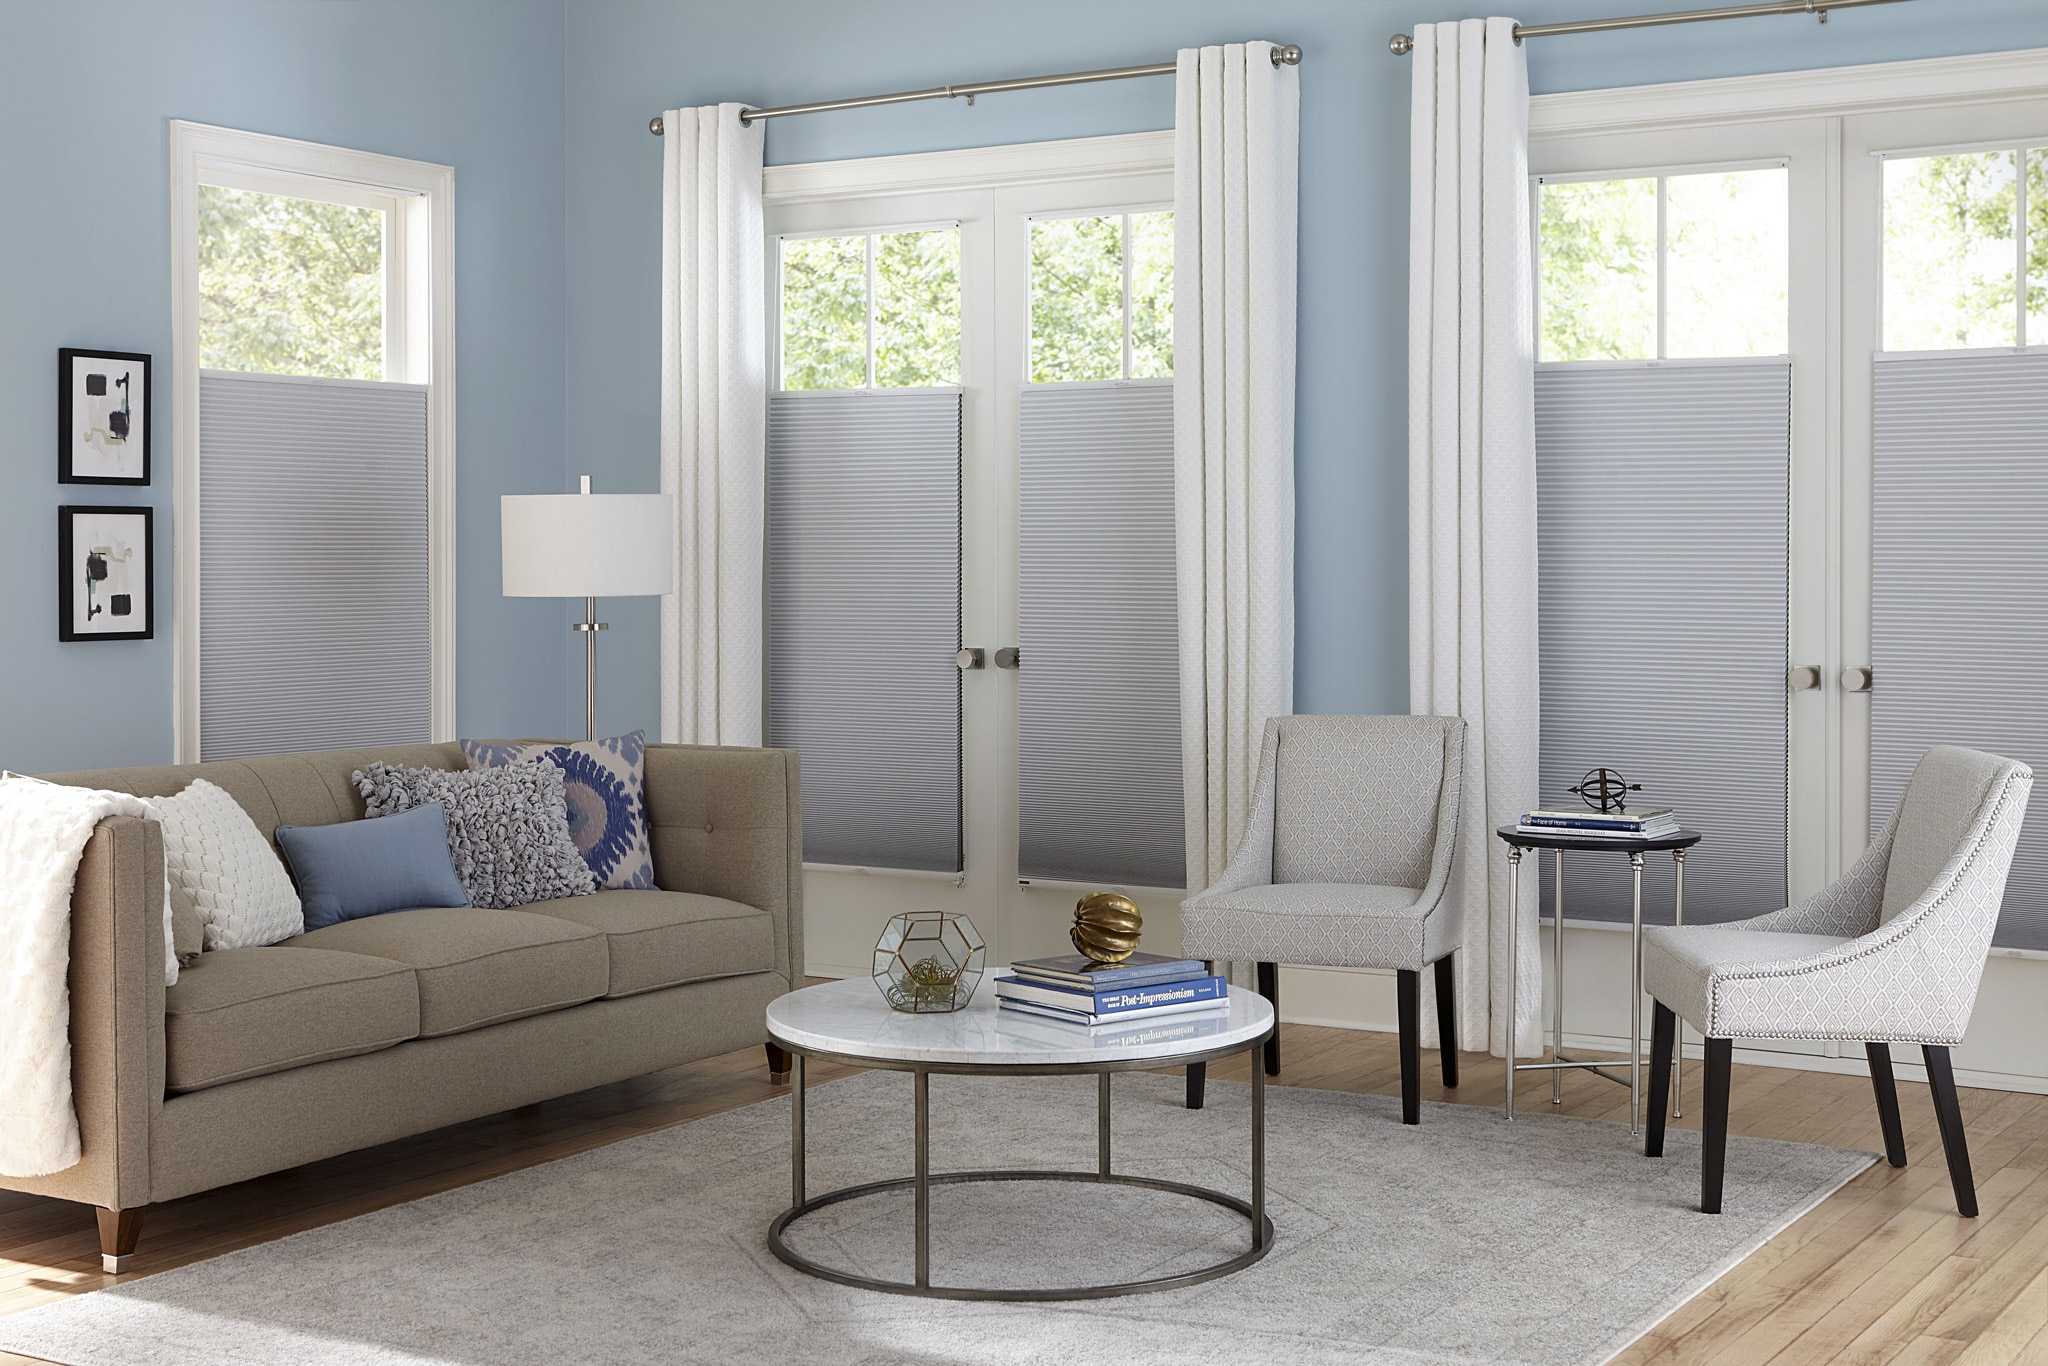 blackout cellular shade paired with the easy grommet drapery shade color glacier dc4001 drapery color riga ocean foam